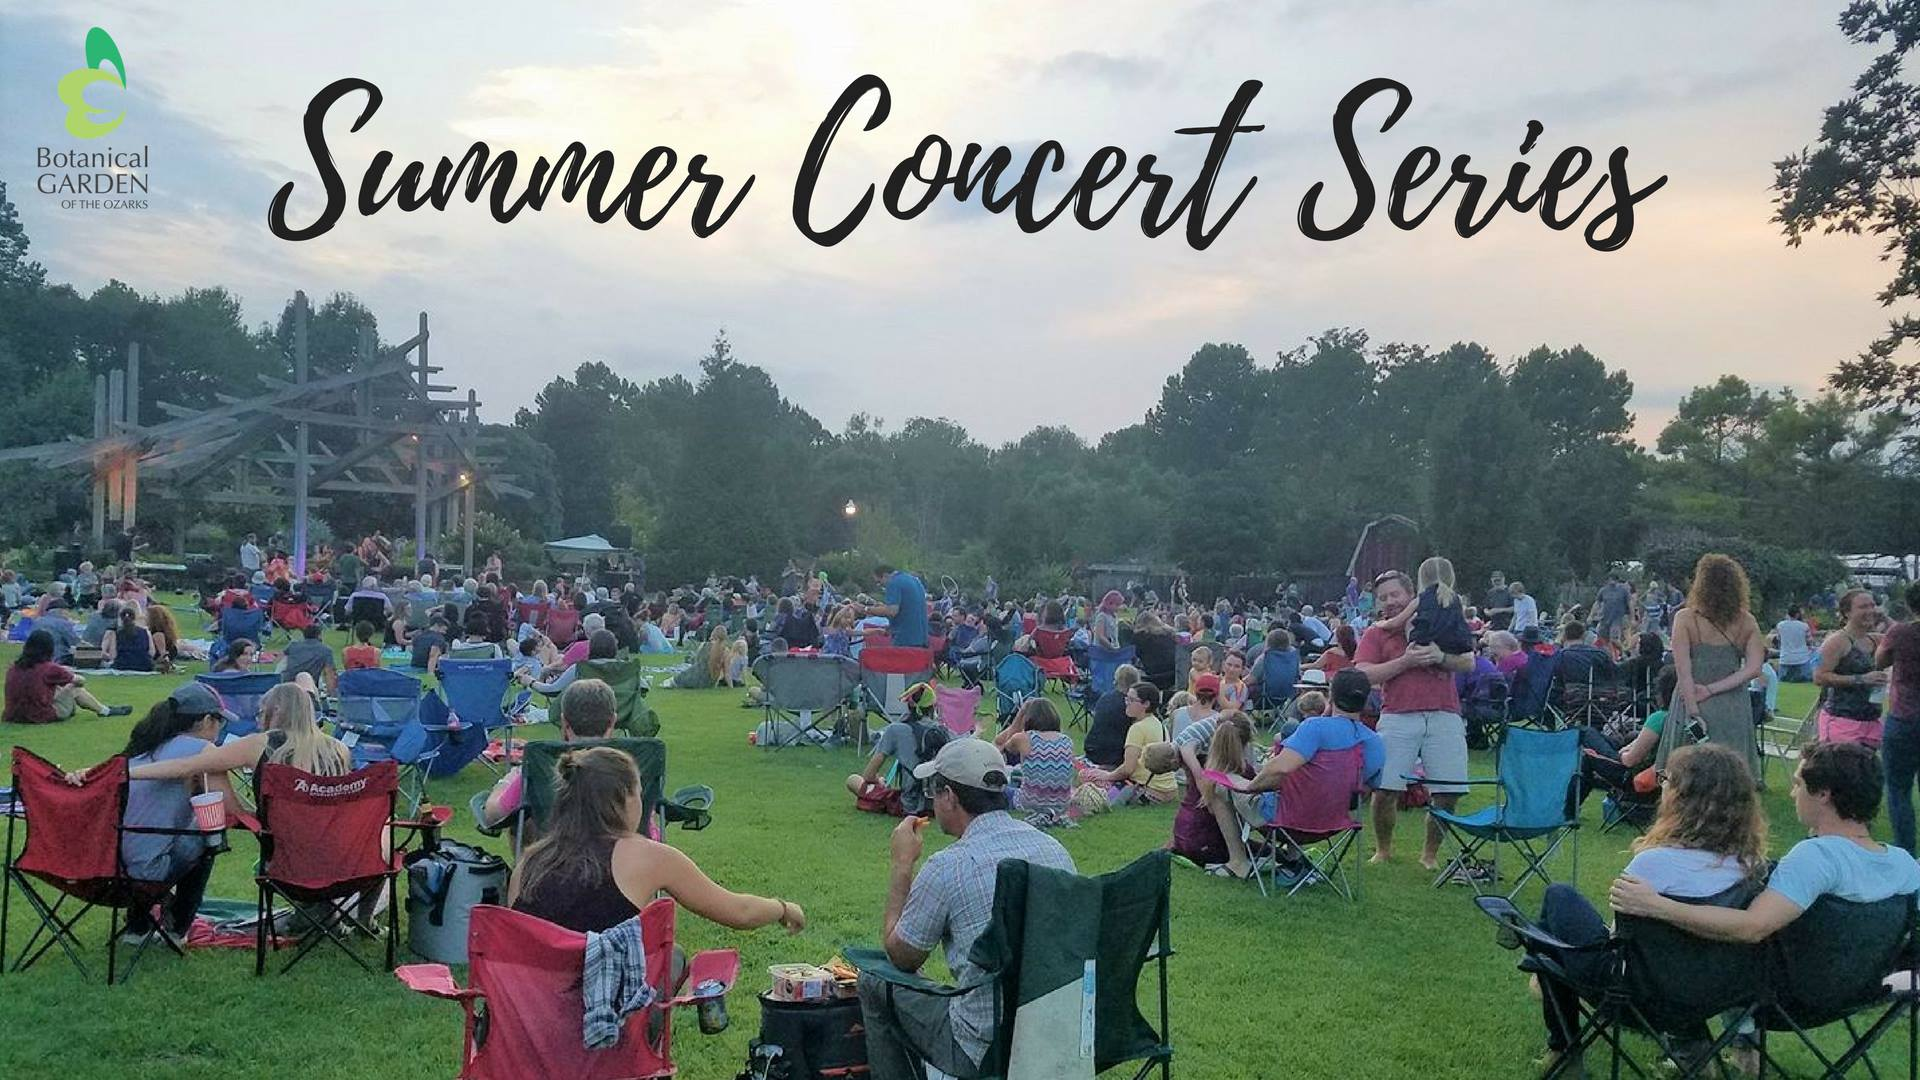 Botanical garden of the ozarks announces free summer concert lineup fayetteville flyer for Botanical gardens concert series